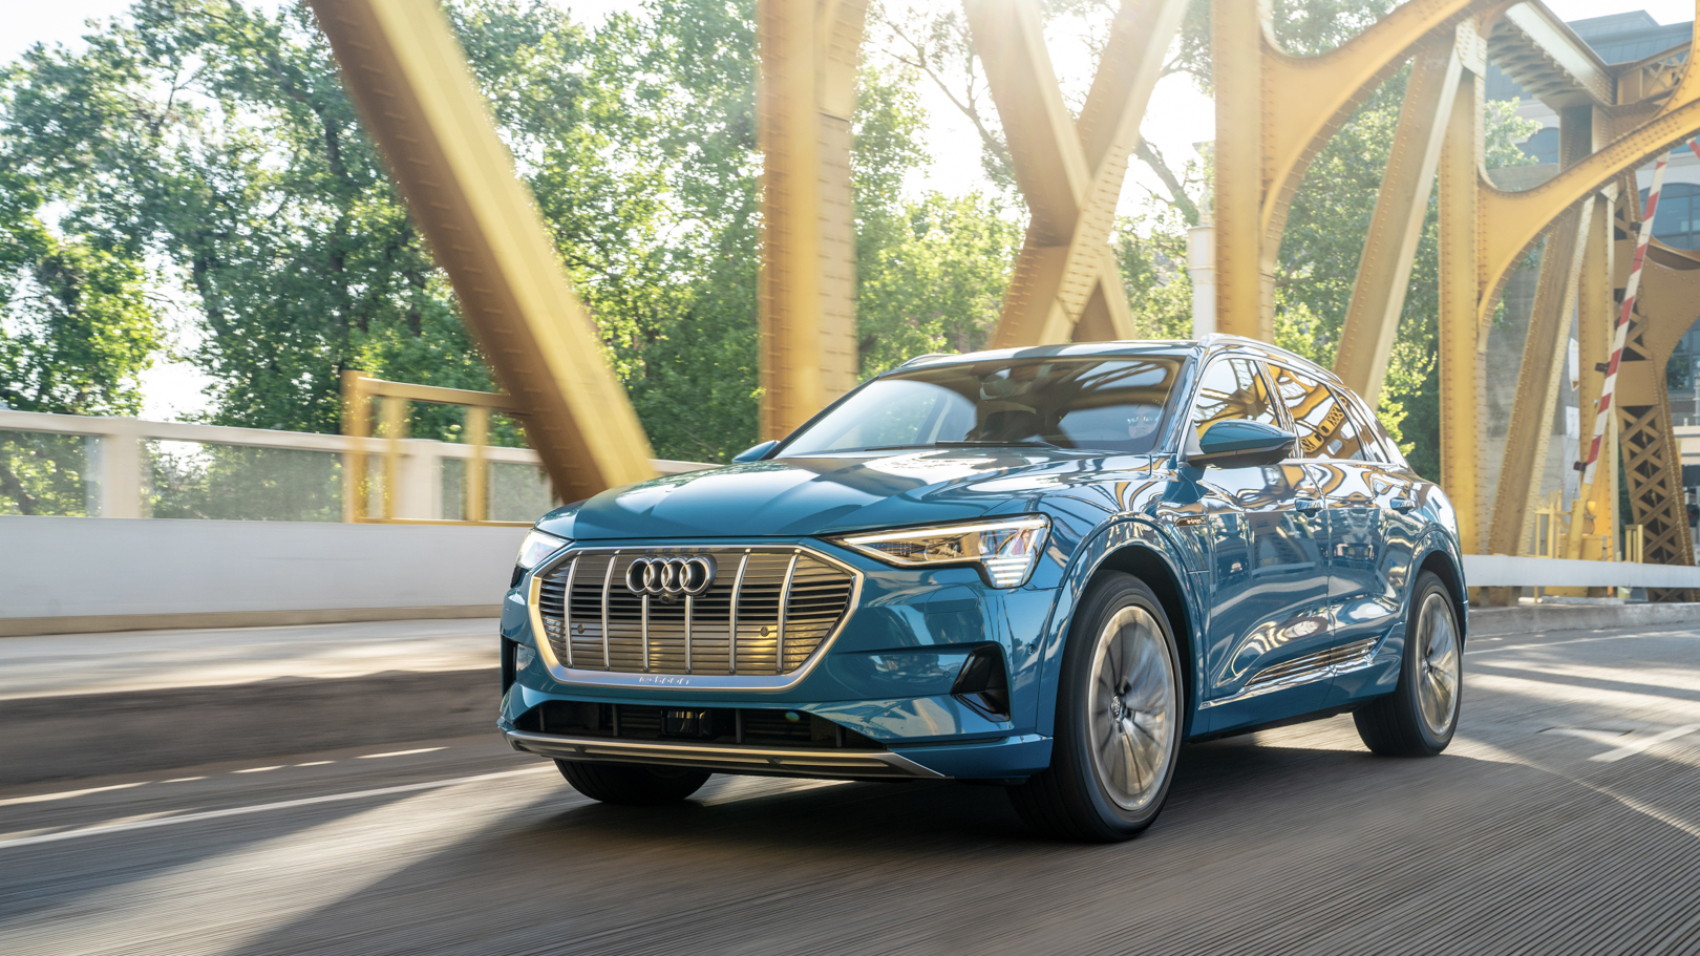 audi-e-tron-suv-42-of-54